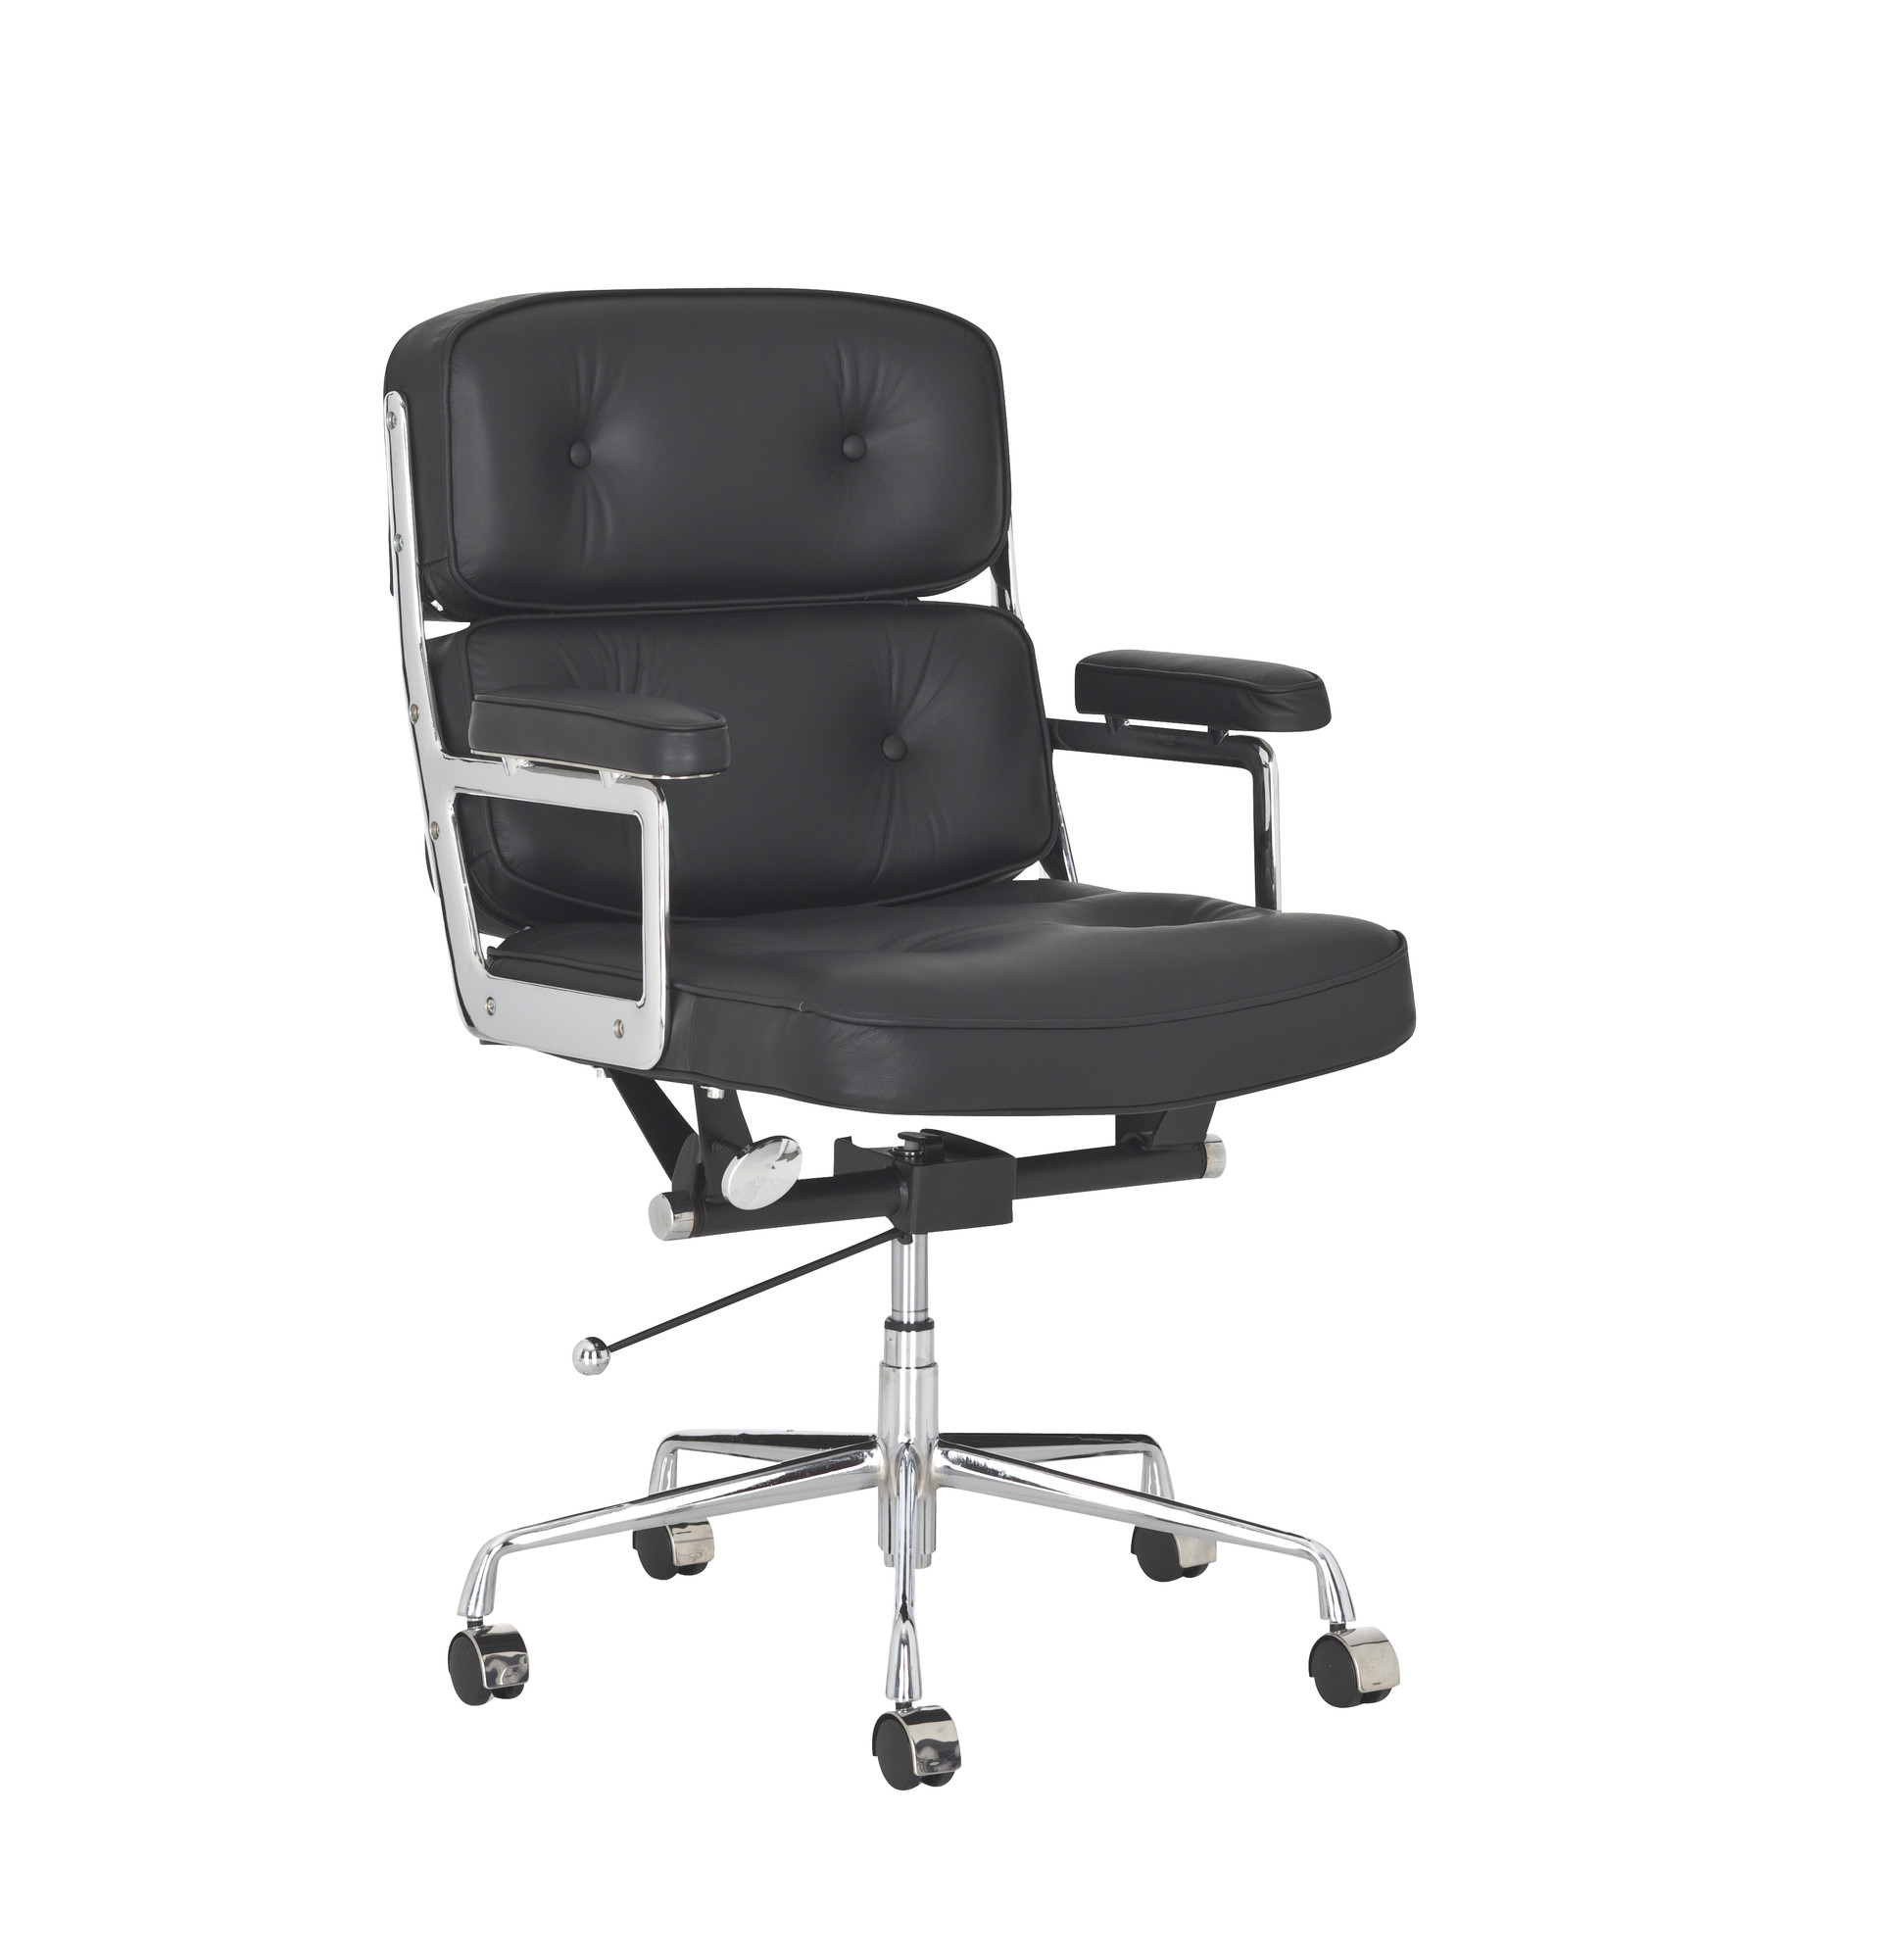 New eames premium replica lobby executive office chair ebay for Eames lobby chair replica